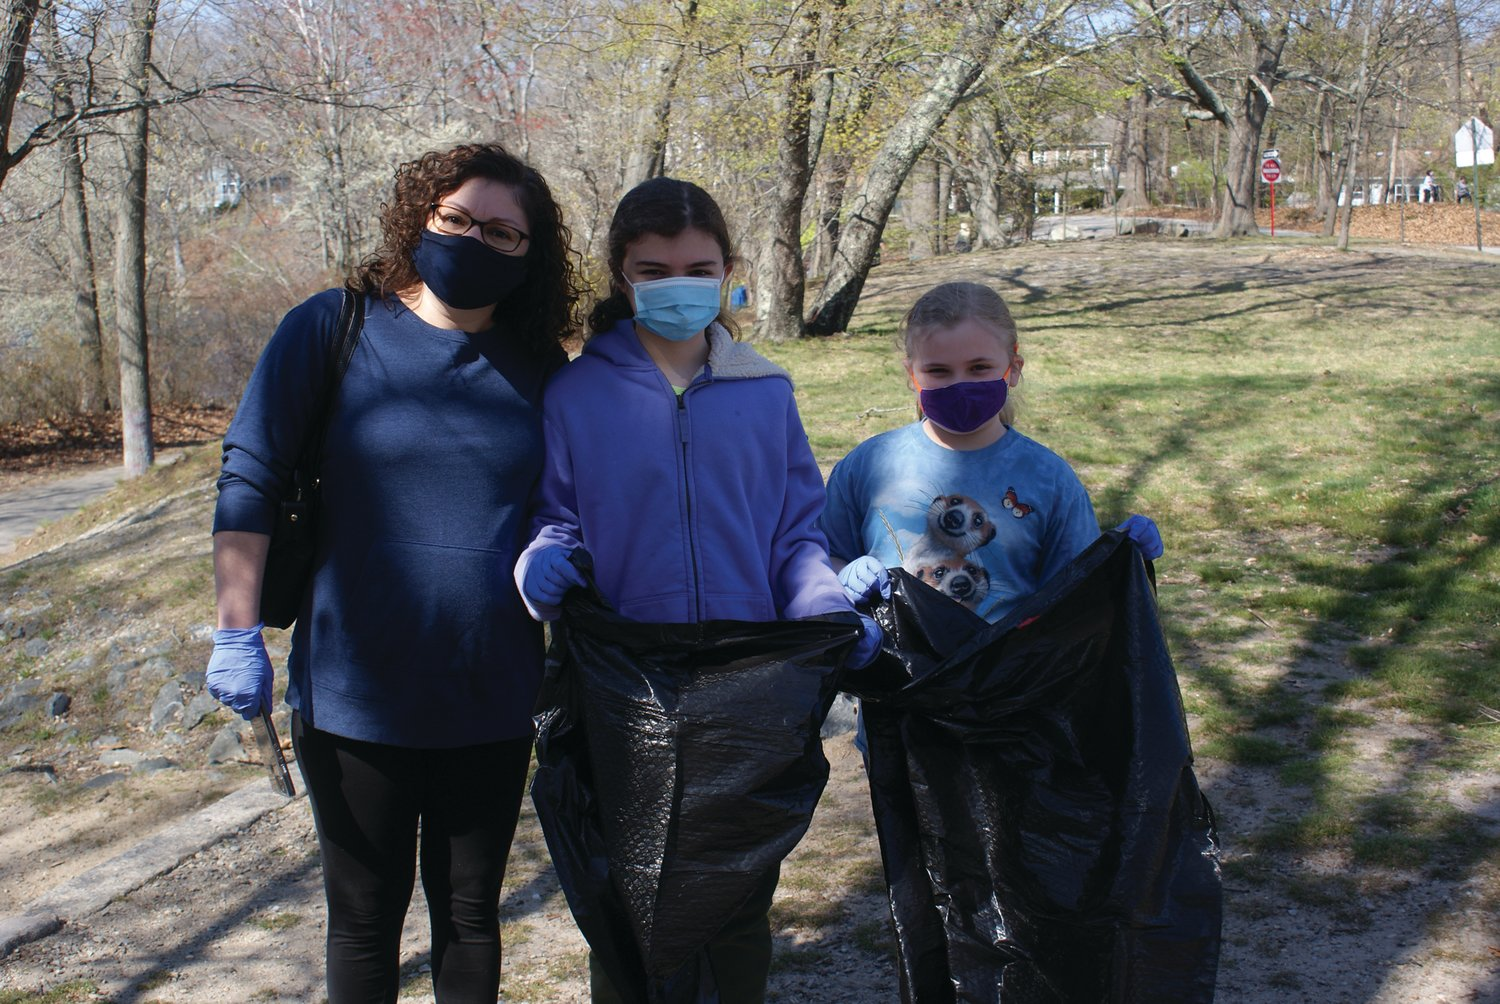 WORKING TOGETHER: Working as a wonderful team during the Earth Day cleanup at Meschanticut Park were Judy Insana and her two daughters, Adrianna, 10, and Alyssa, 7.